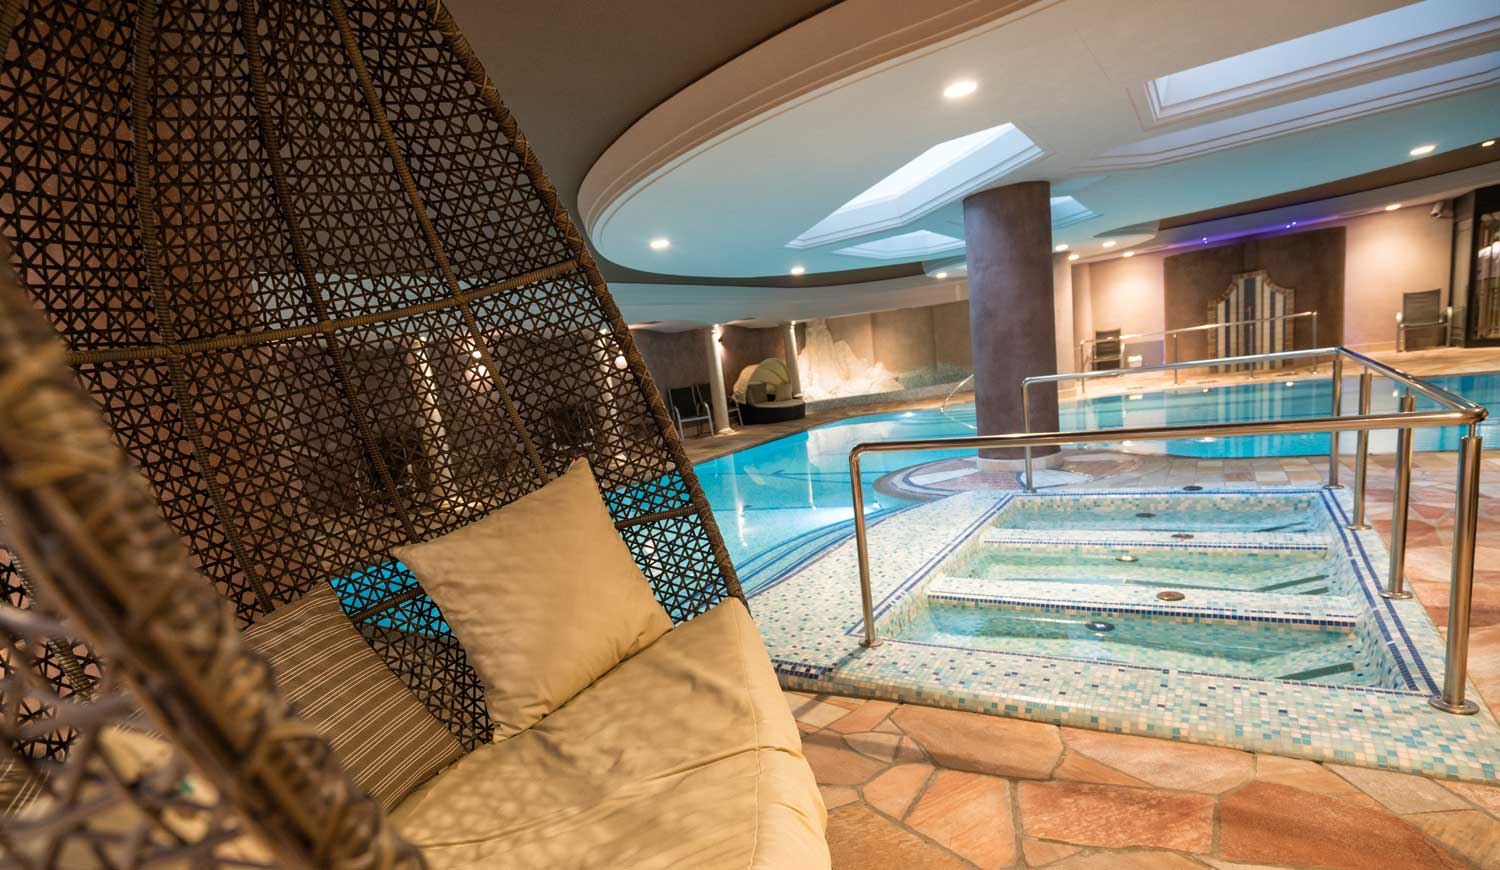 Innenpool un Whirlpool im Hotel Ideal Park